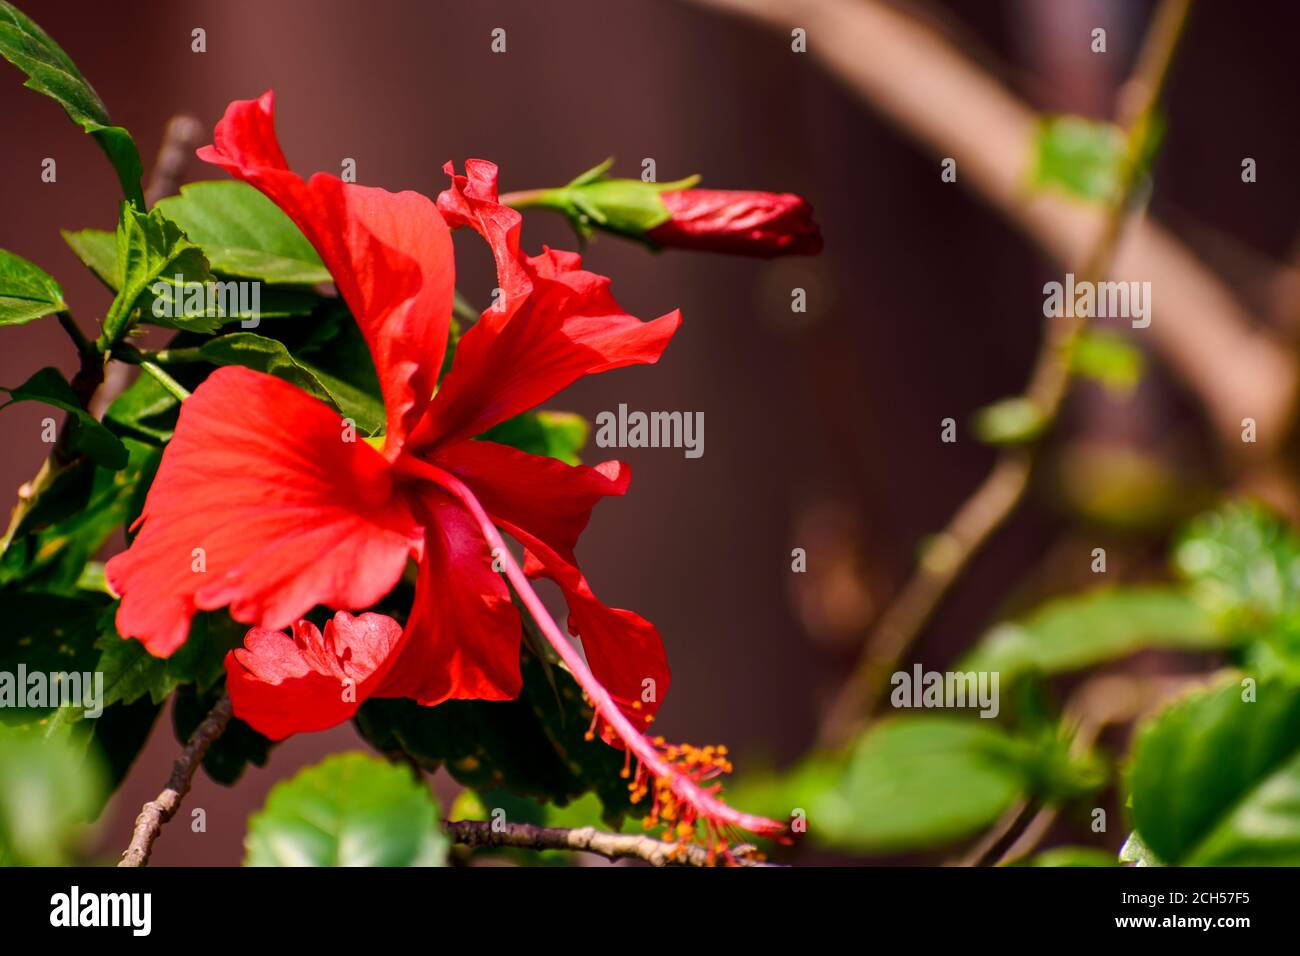 Hibiscus Flower With Leaves And Branches In Flower Garden Stock Photo Alamy